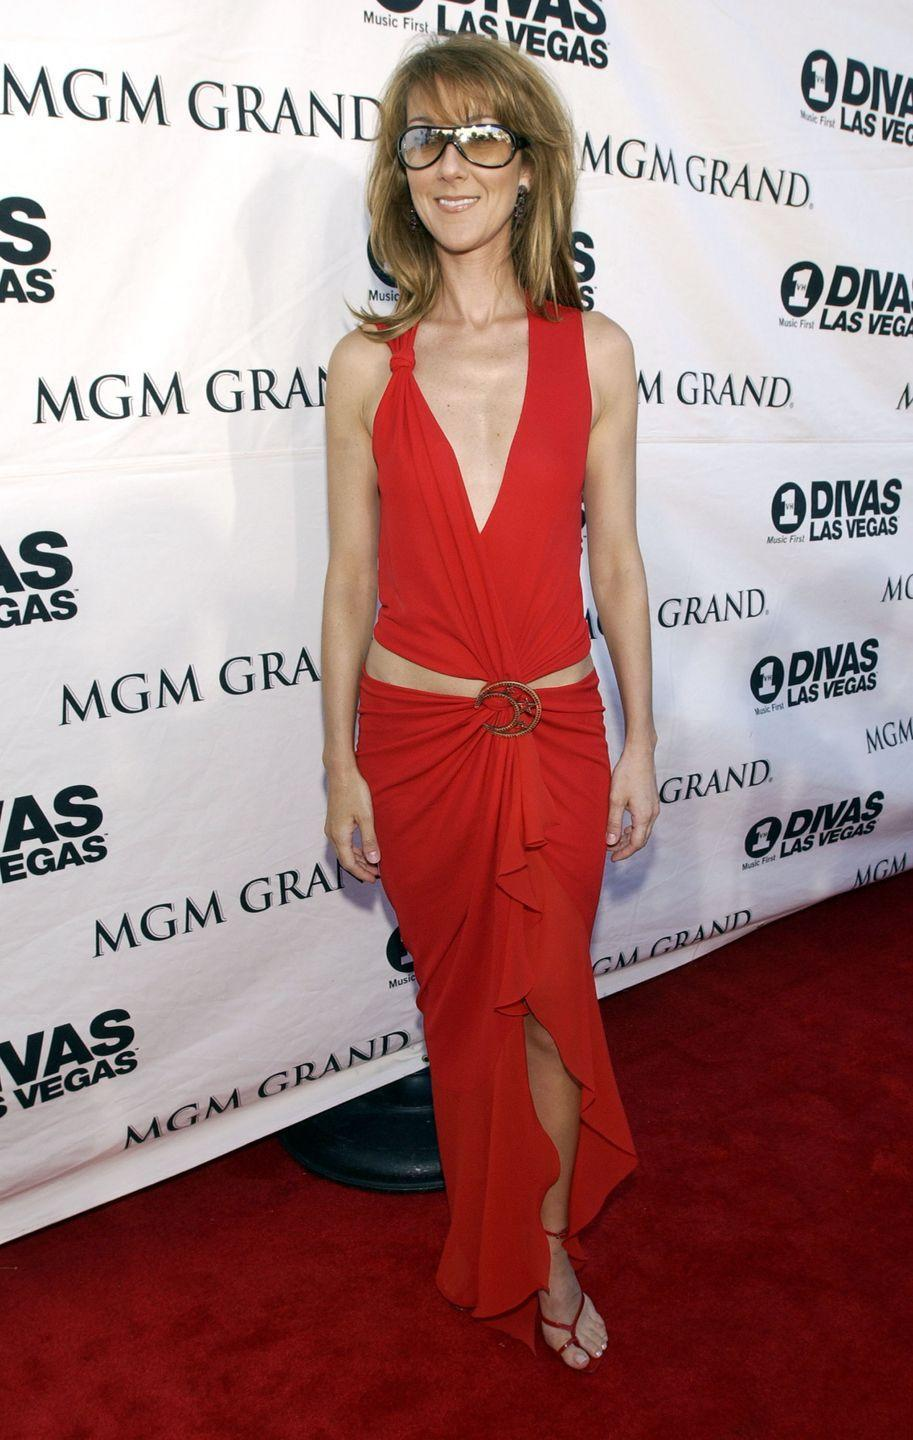 <p>Another skin-baring dress from Dion, and once again, it did not disappoint. The flattering draping and strappy heels are gorgeous, and her signature sunglasses are always a delight.</p>